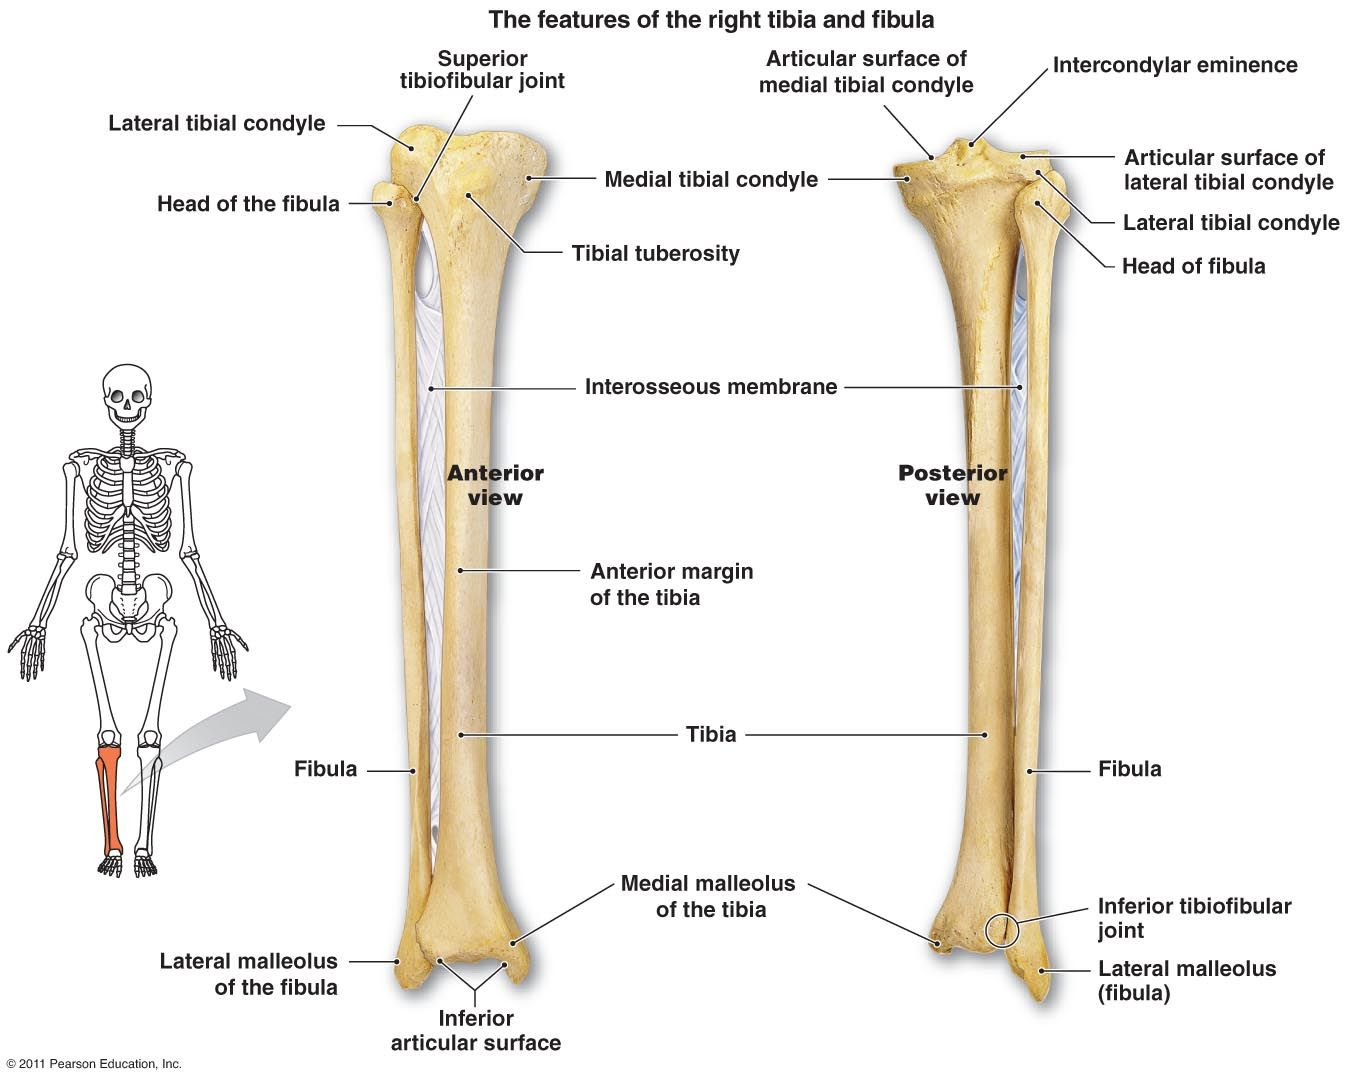 tibia and fibula diagram - Google Search | Radio-o-logy | Pinterest